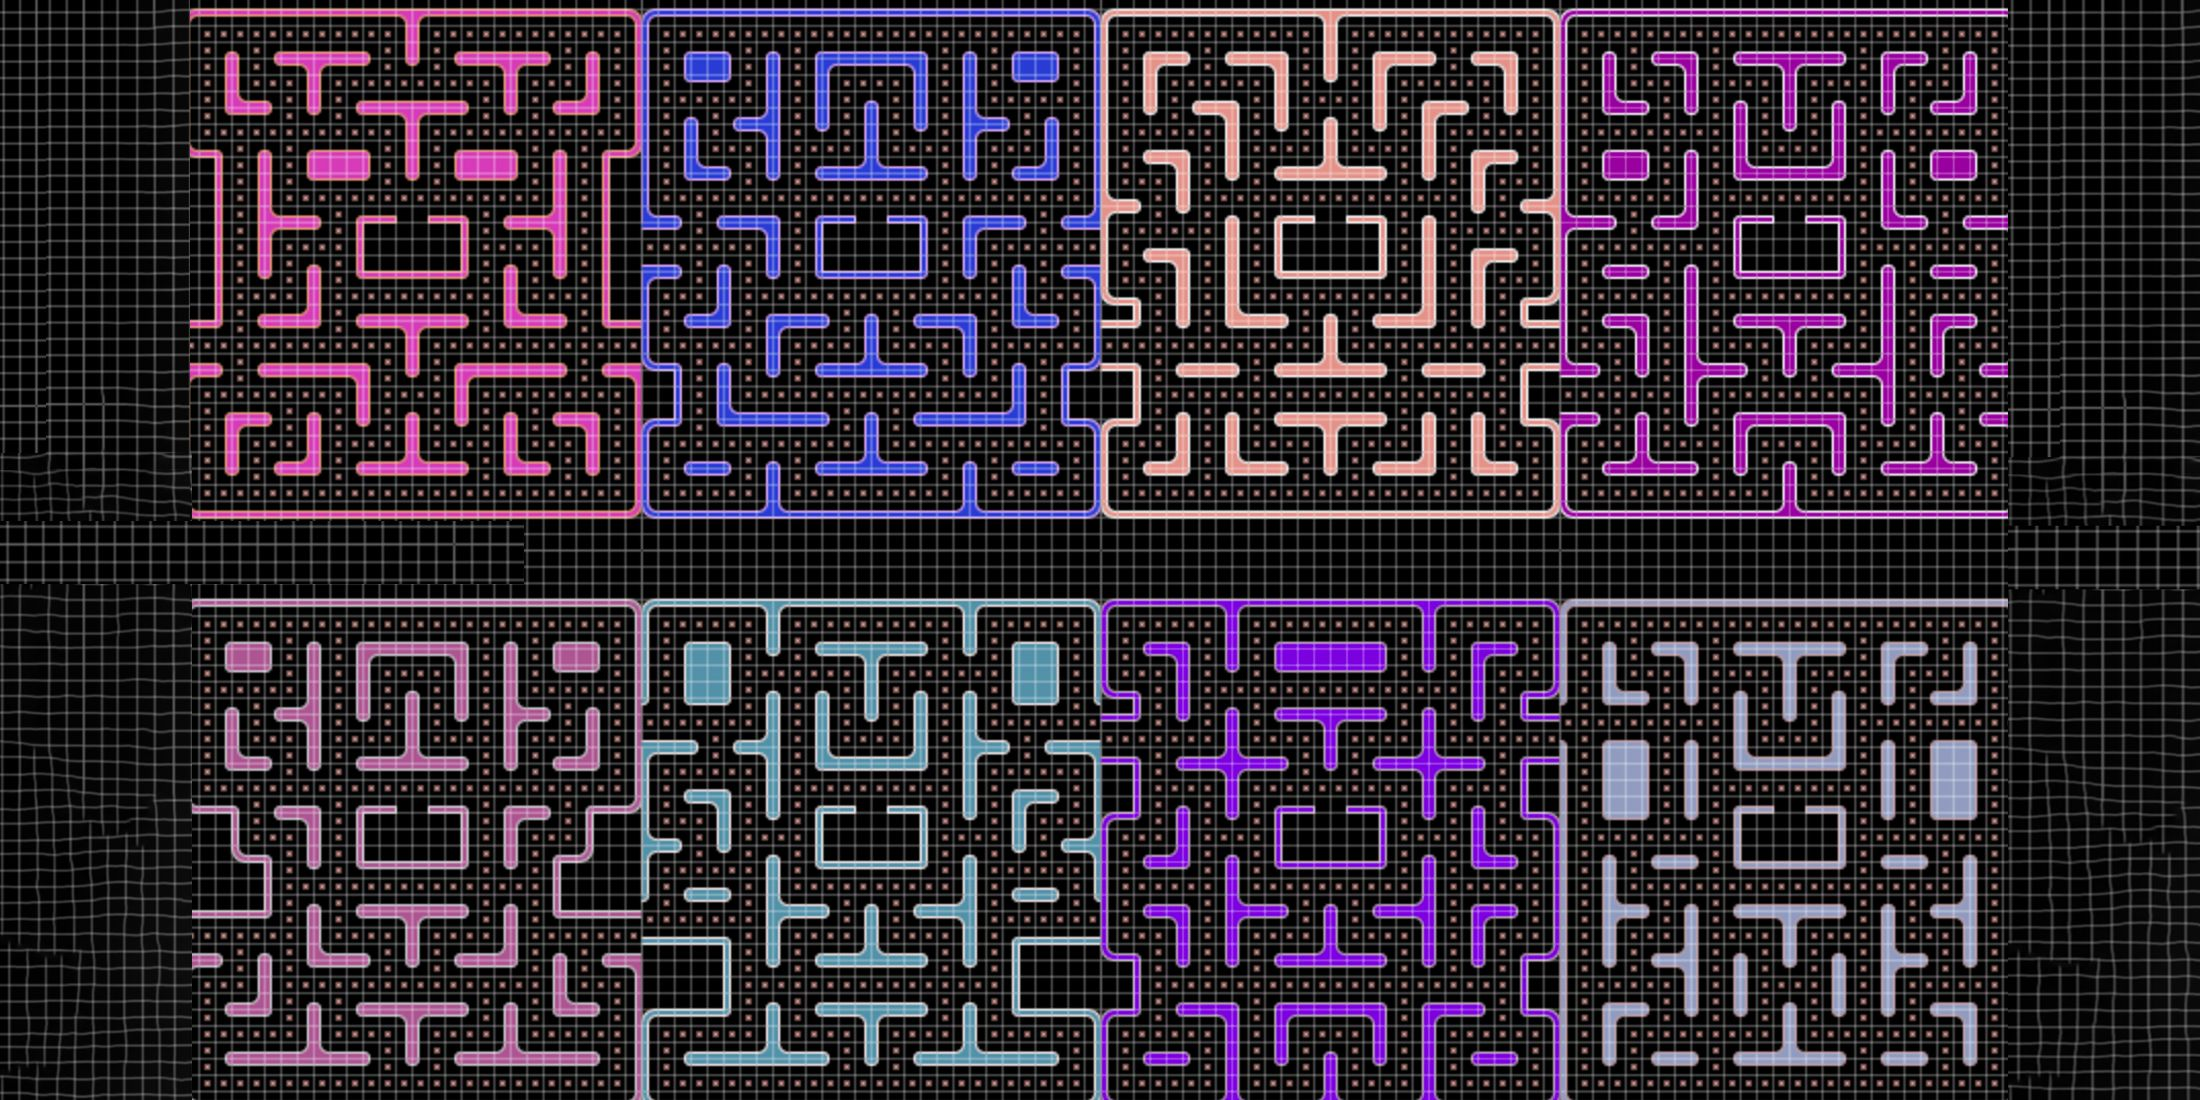 A Programmer Spent Months Generating Pac-Man Mazes. It Was Time Well Spent.